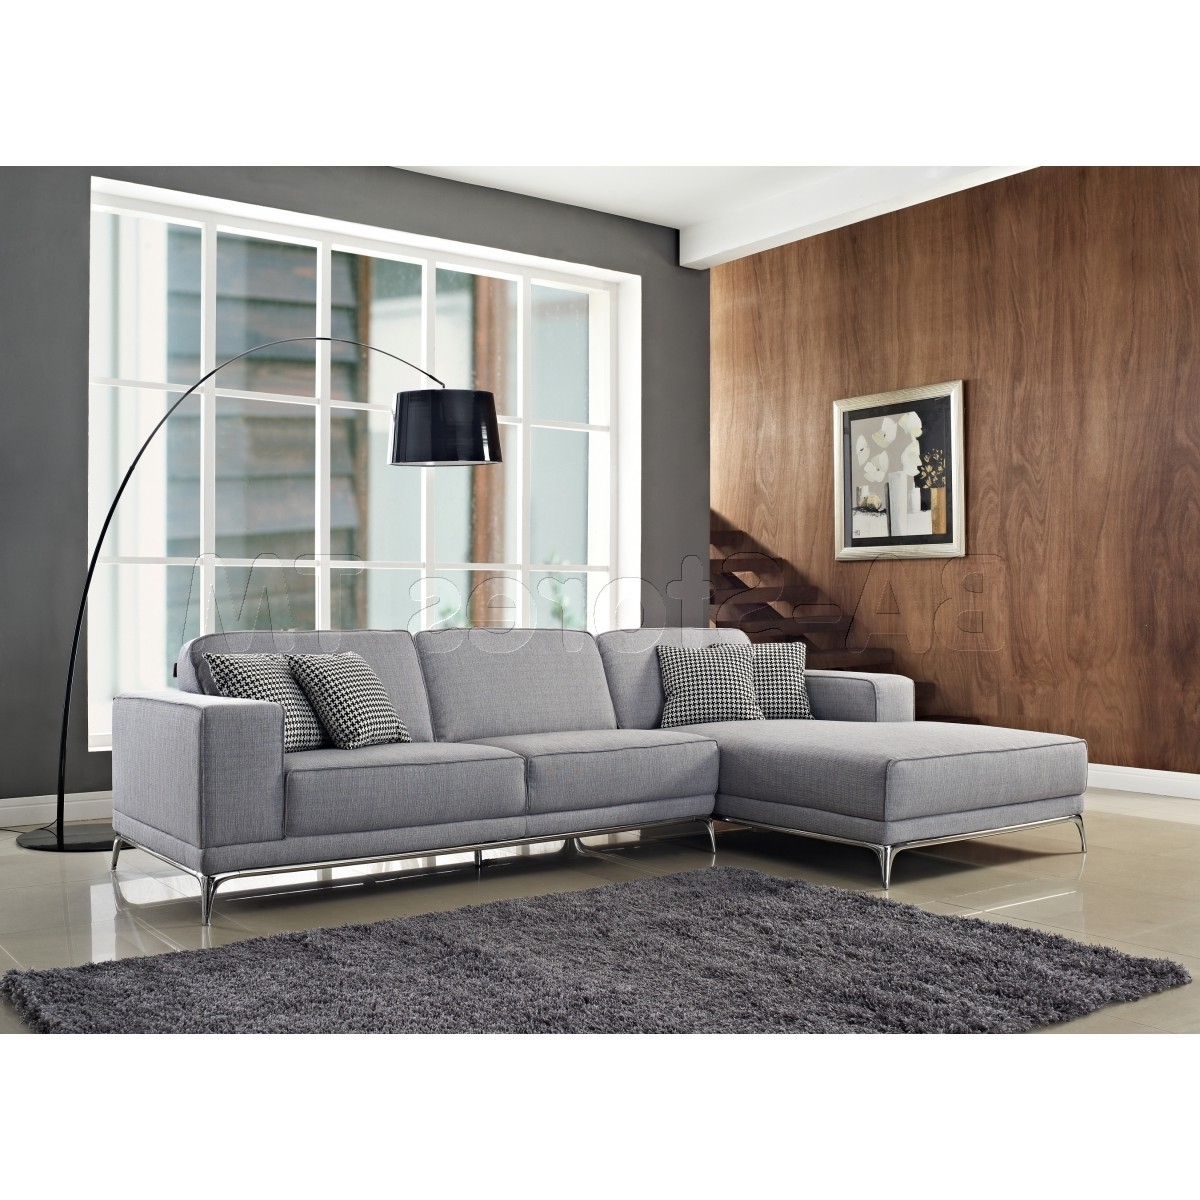 Nyc Sectional Sofas For Most Recently Released Agata Sectional Sofa (View 14 of 20)